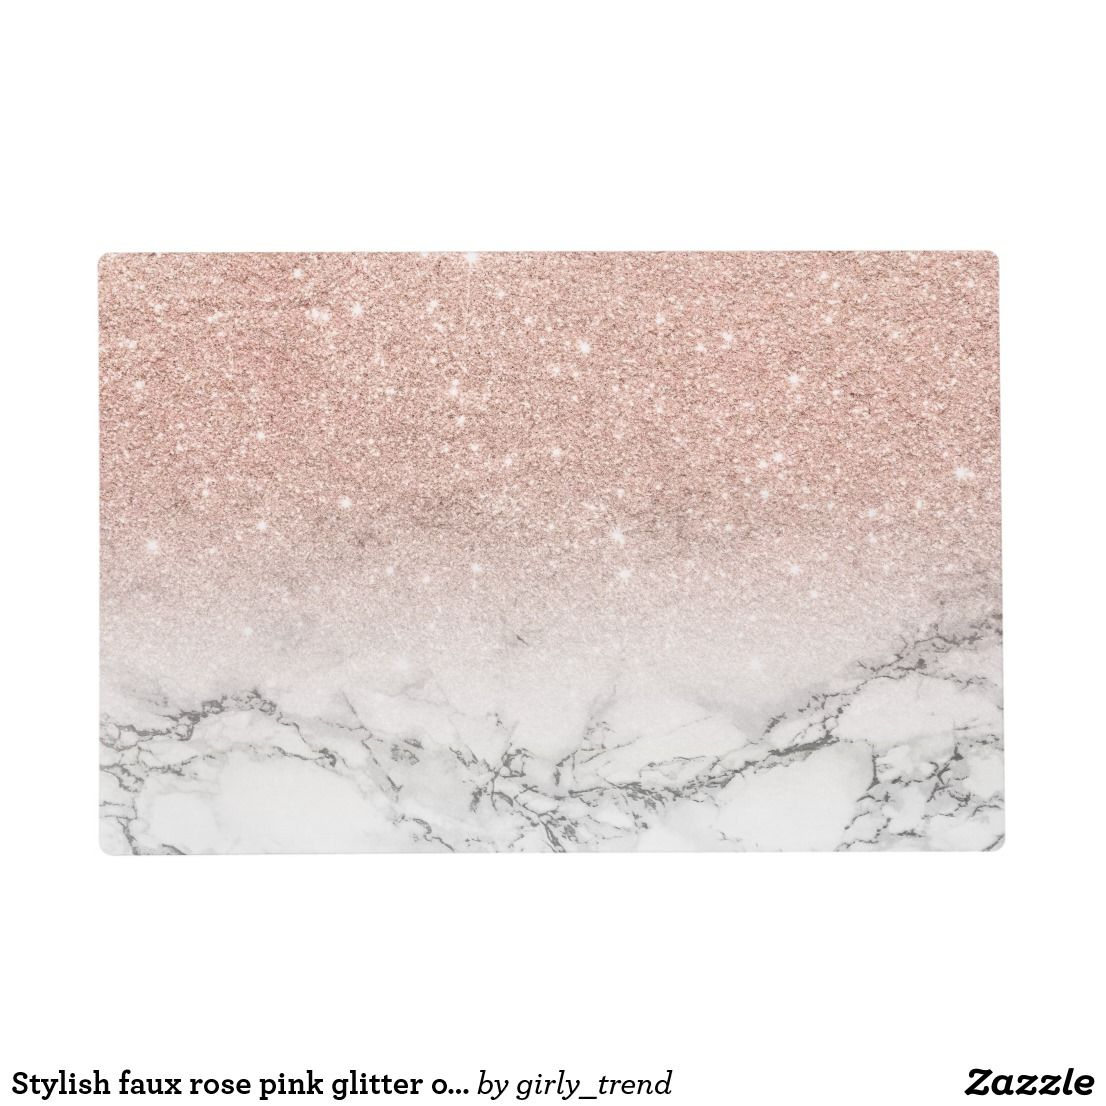 Stylish Faux Rose Pink Glitter Ombre White Marble Placemat Zazzle Com Rose Gold Wallpaper Gold Wallpaper Pink Glitter Wallpaper